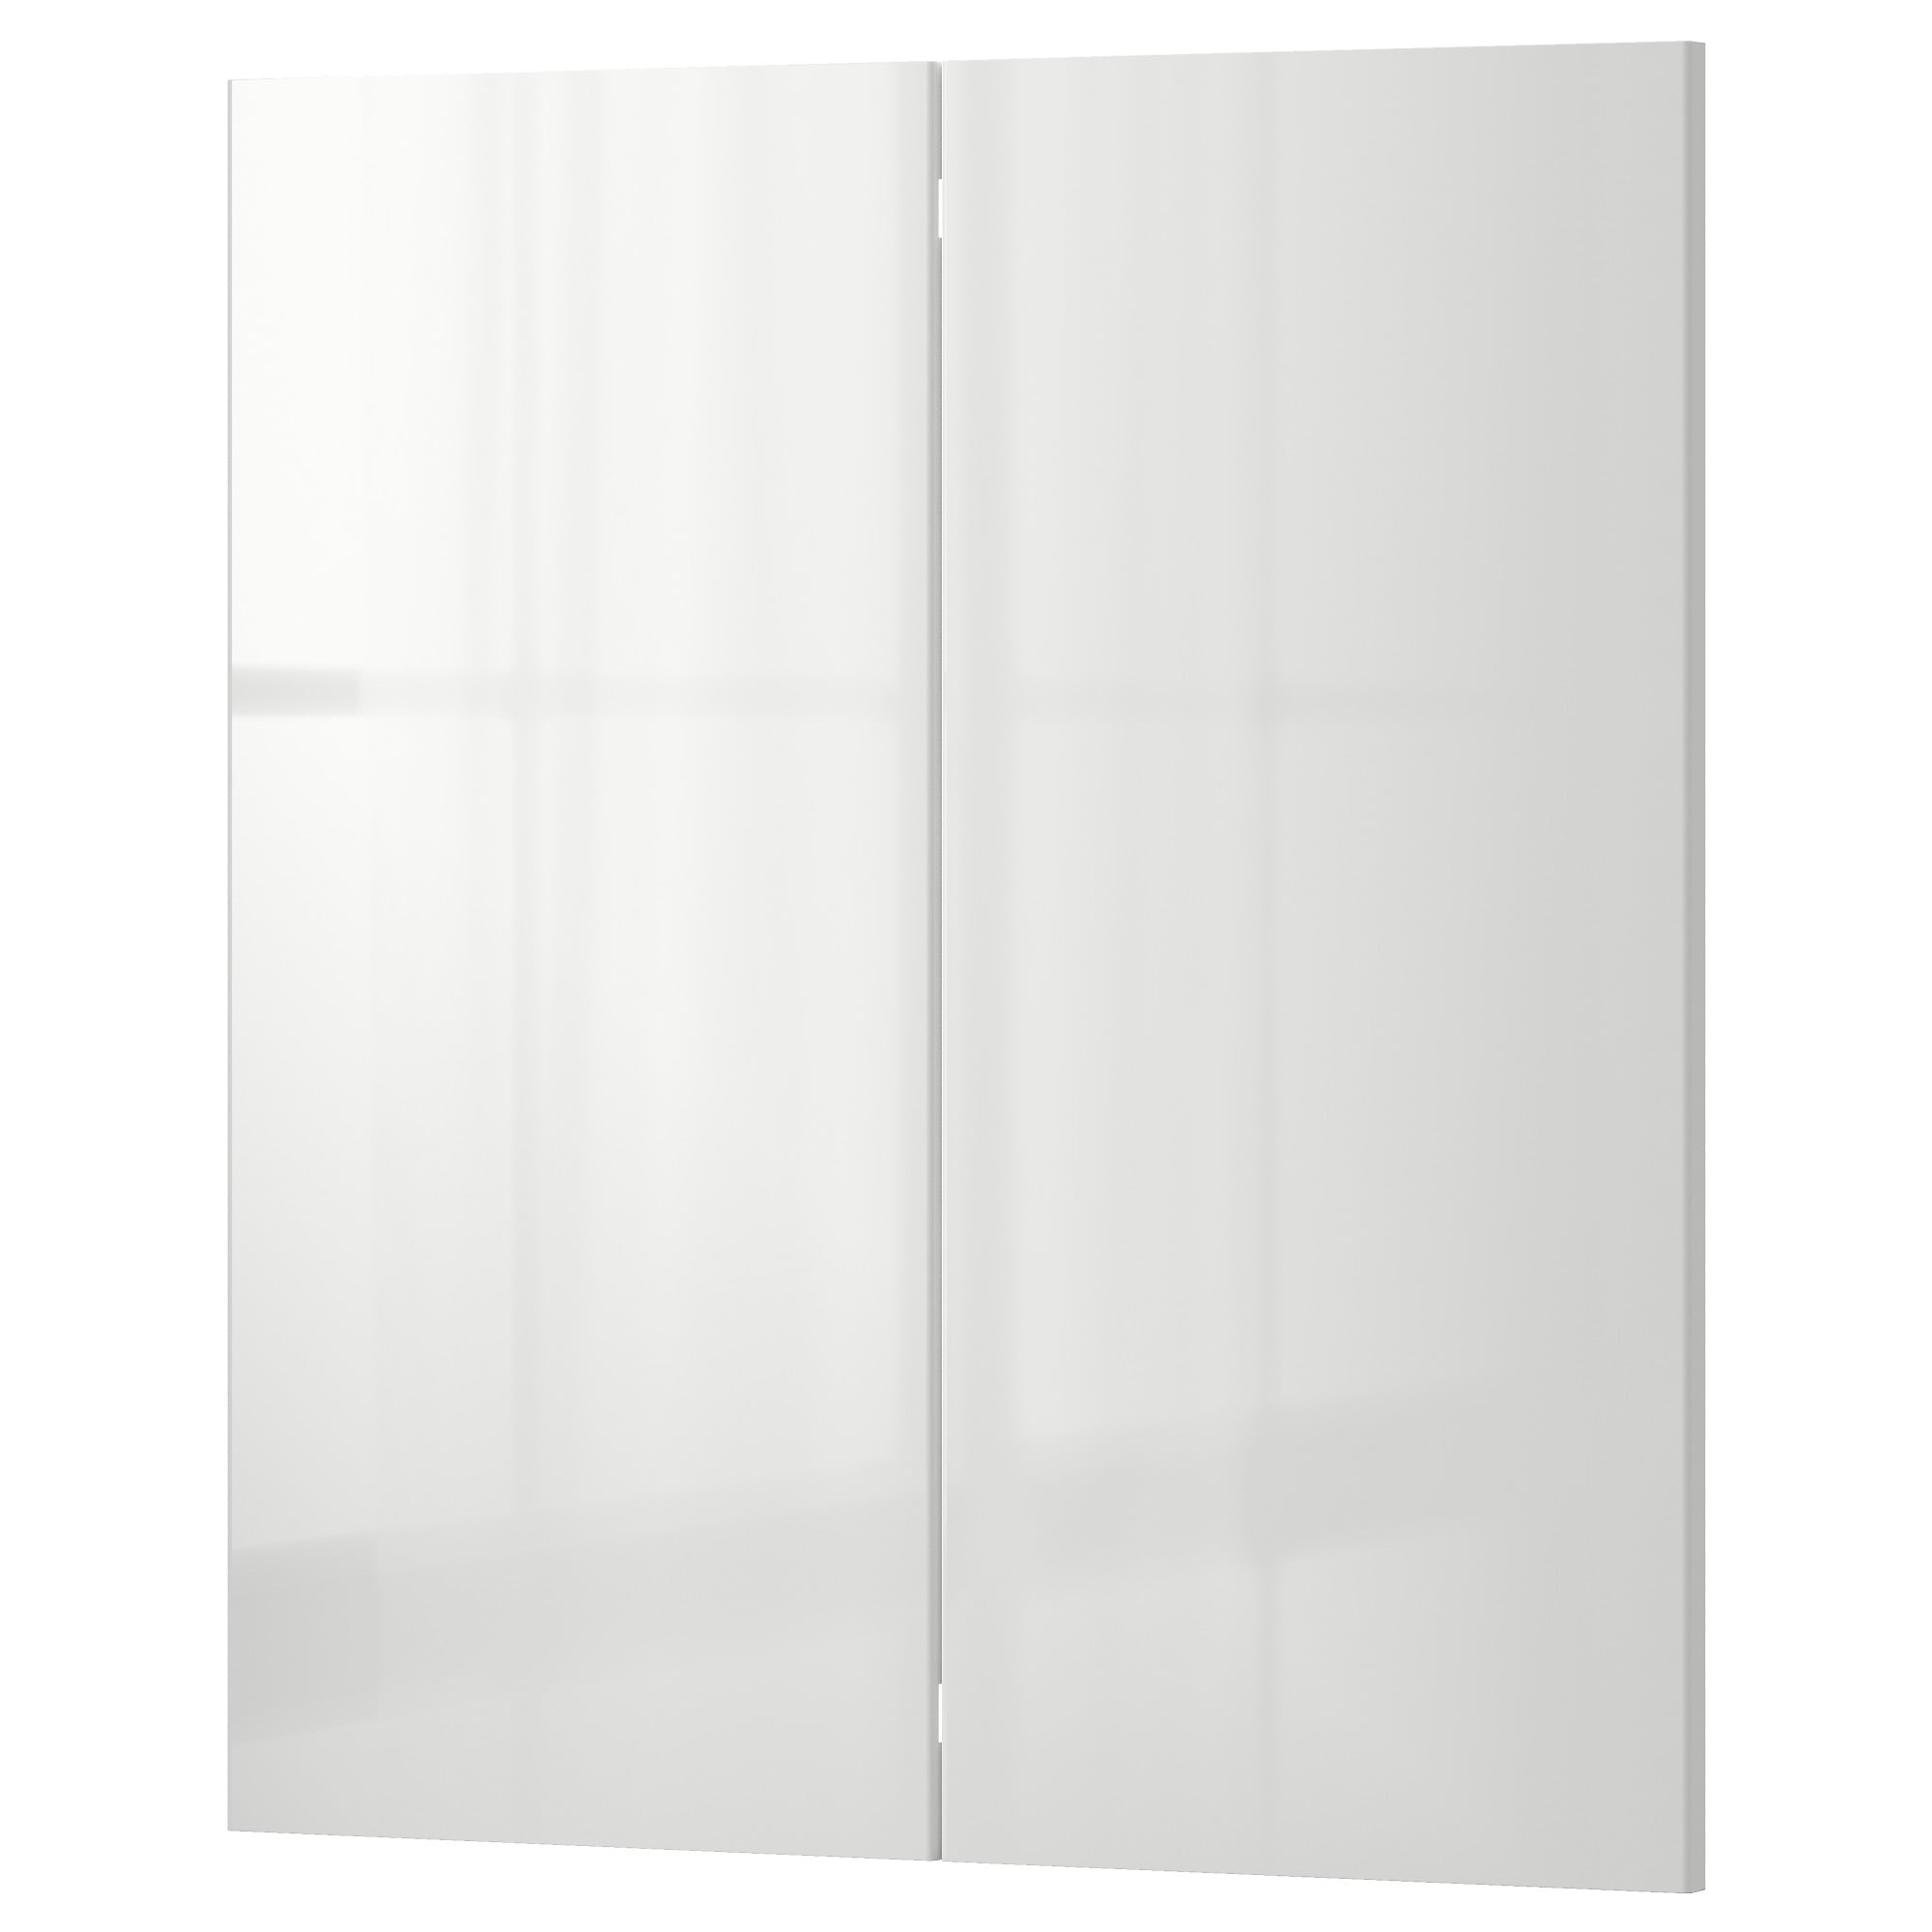 White Kitchen Cabinet Doors cabinet doors - sektion system - ikea